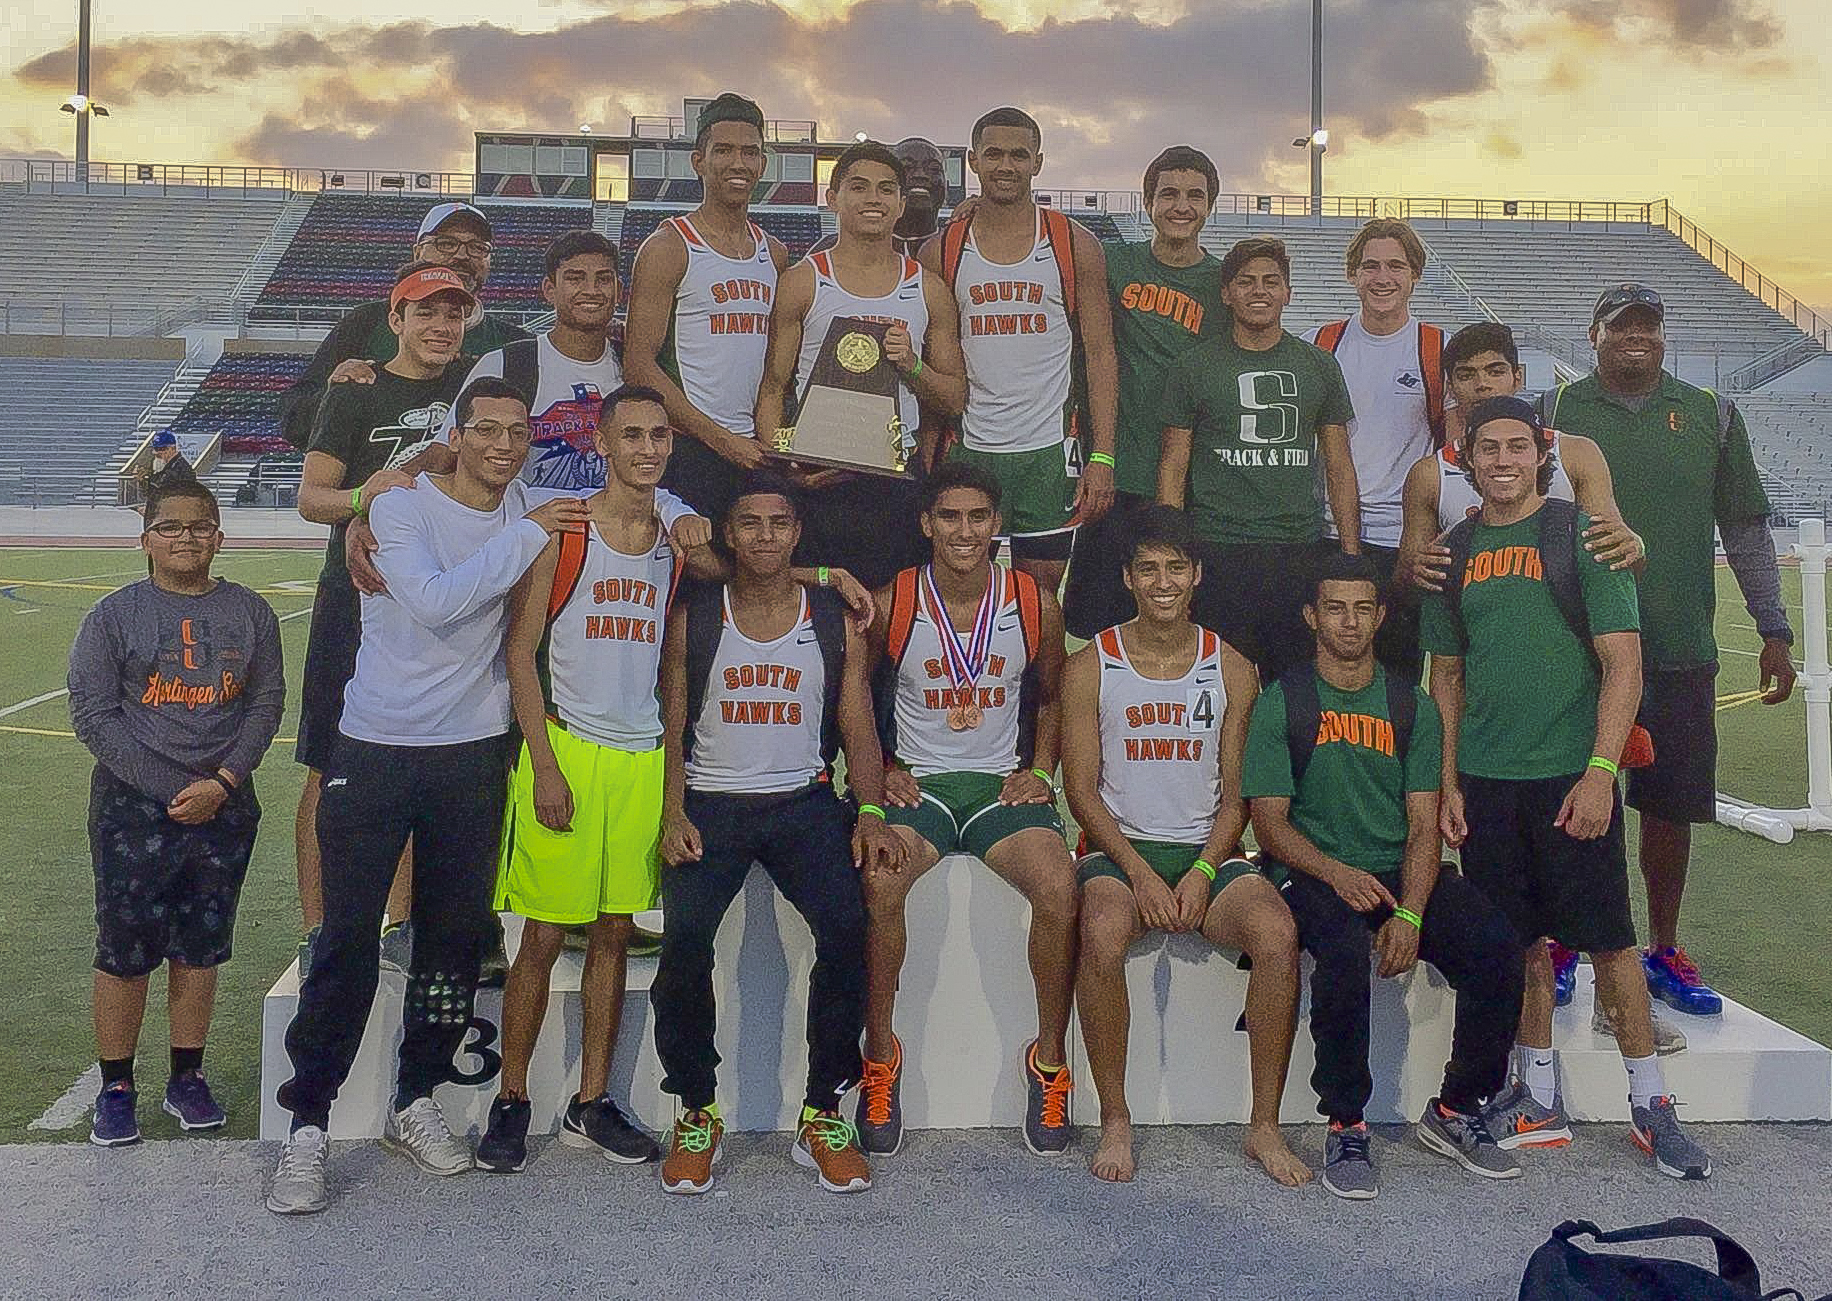 Harlingen South Boys Track and Field Team named Area Champs, Regional qualifiers announced